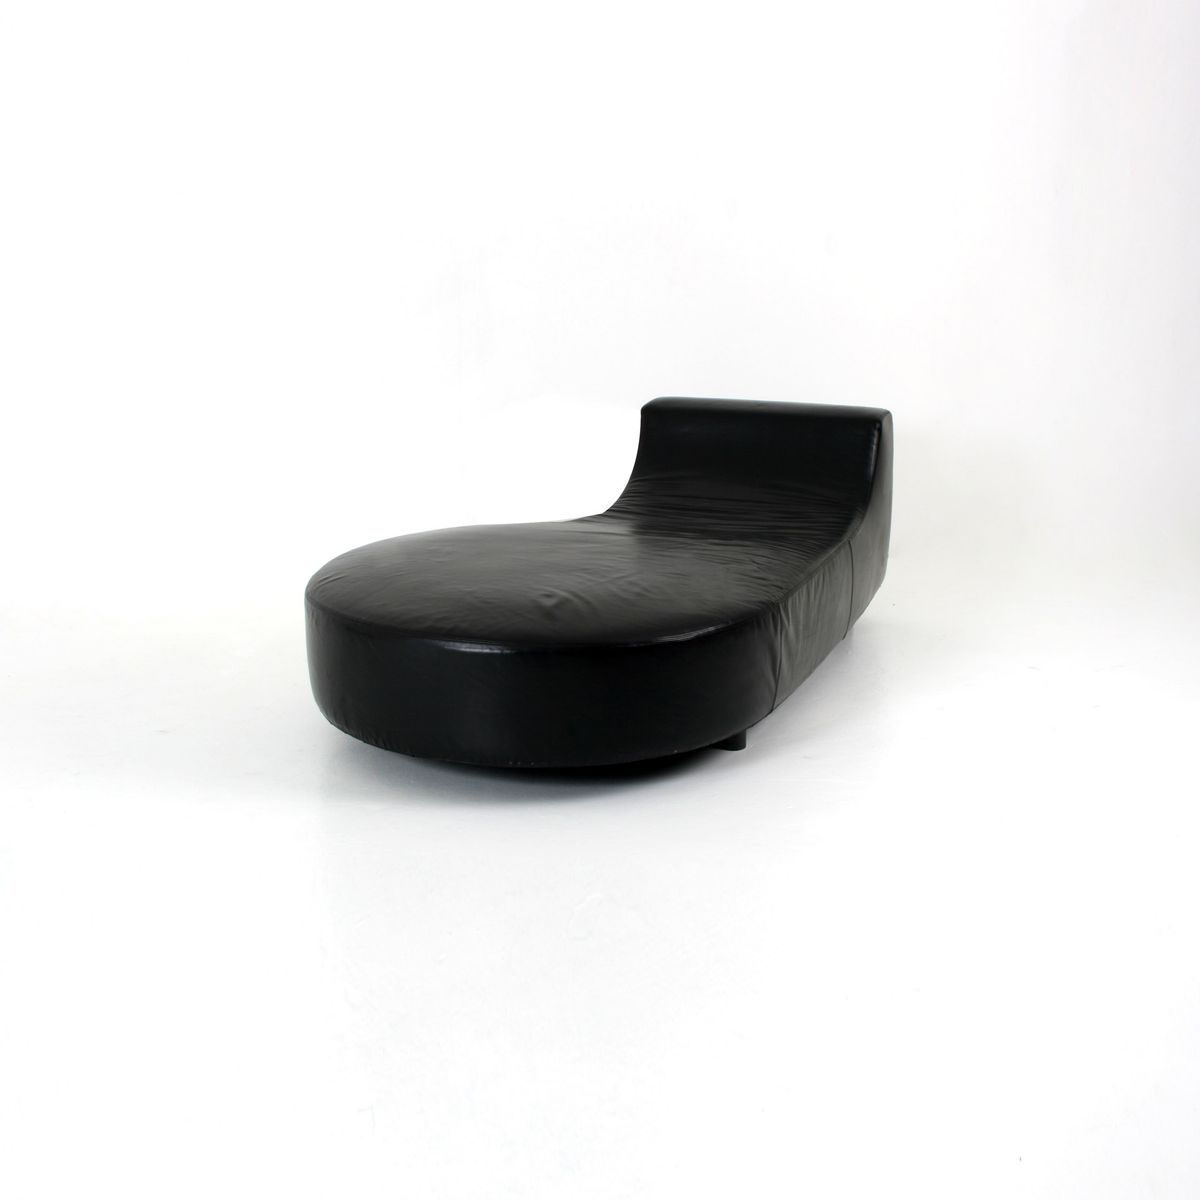 Awesome Chaise Longue Prezzi Bassi Images - head-lice.us - head ...